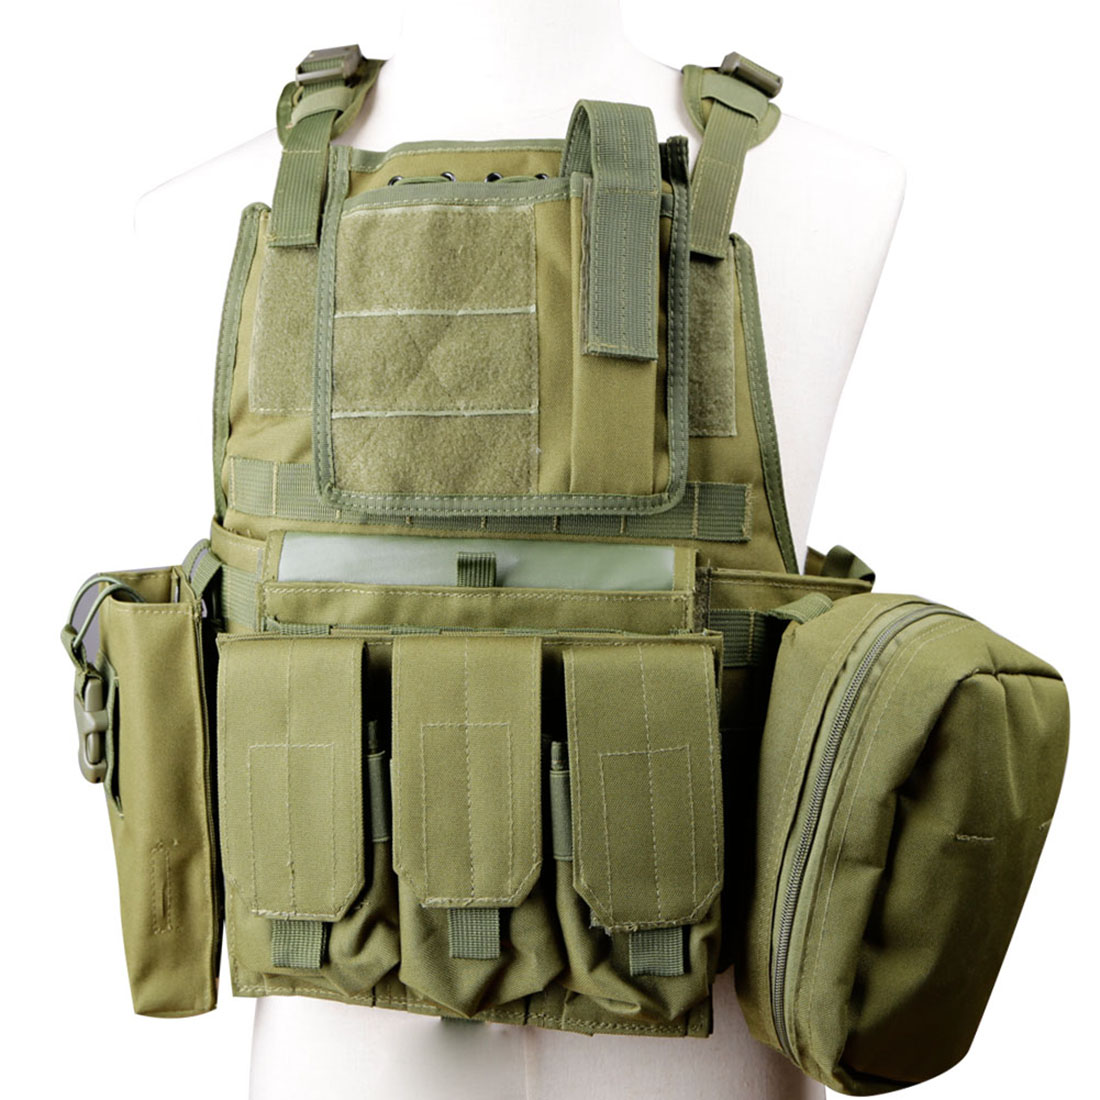 Safety Vest Molle Military Quick Release Tactical Vest Adjustable Outdoor Airsoft Paintball Protective Vest For Hunting Shooting